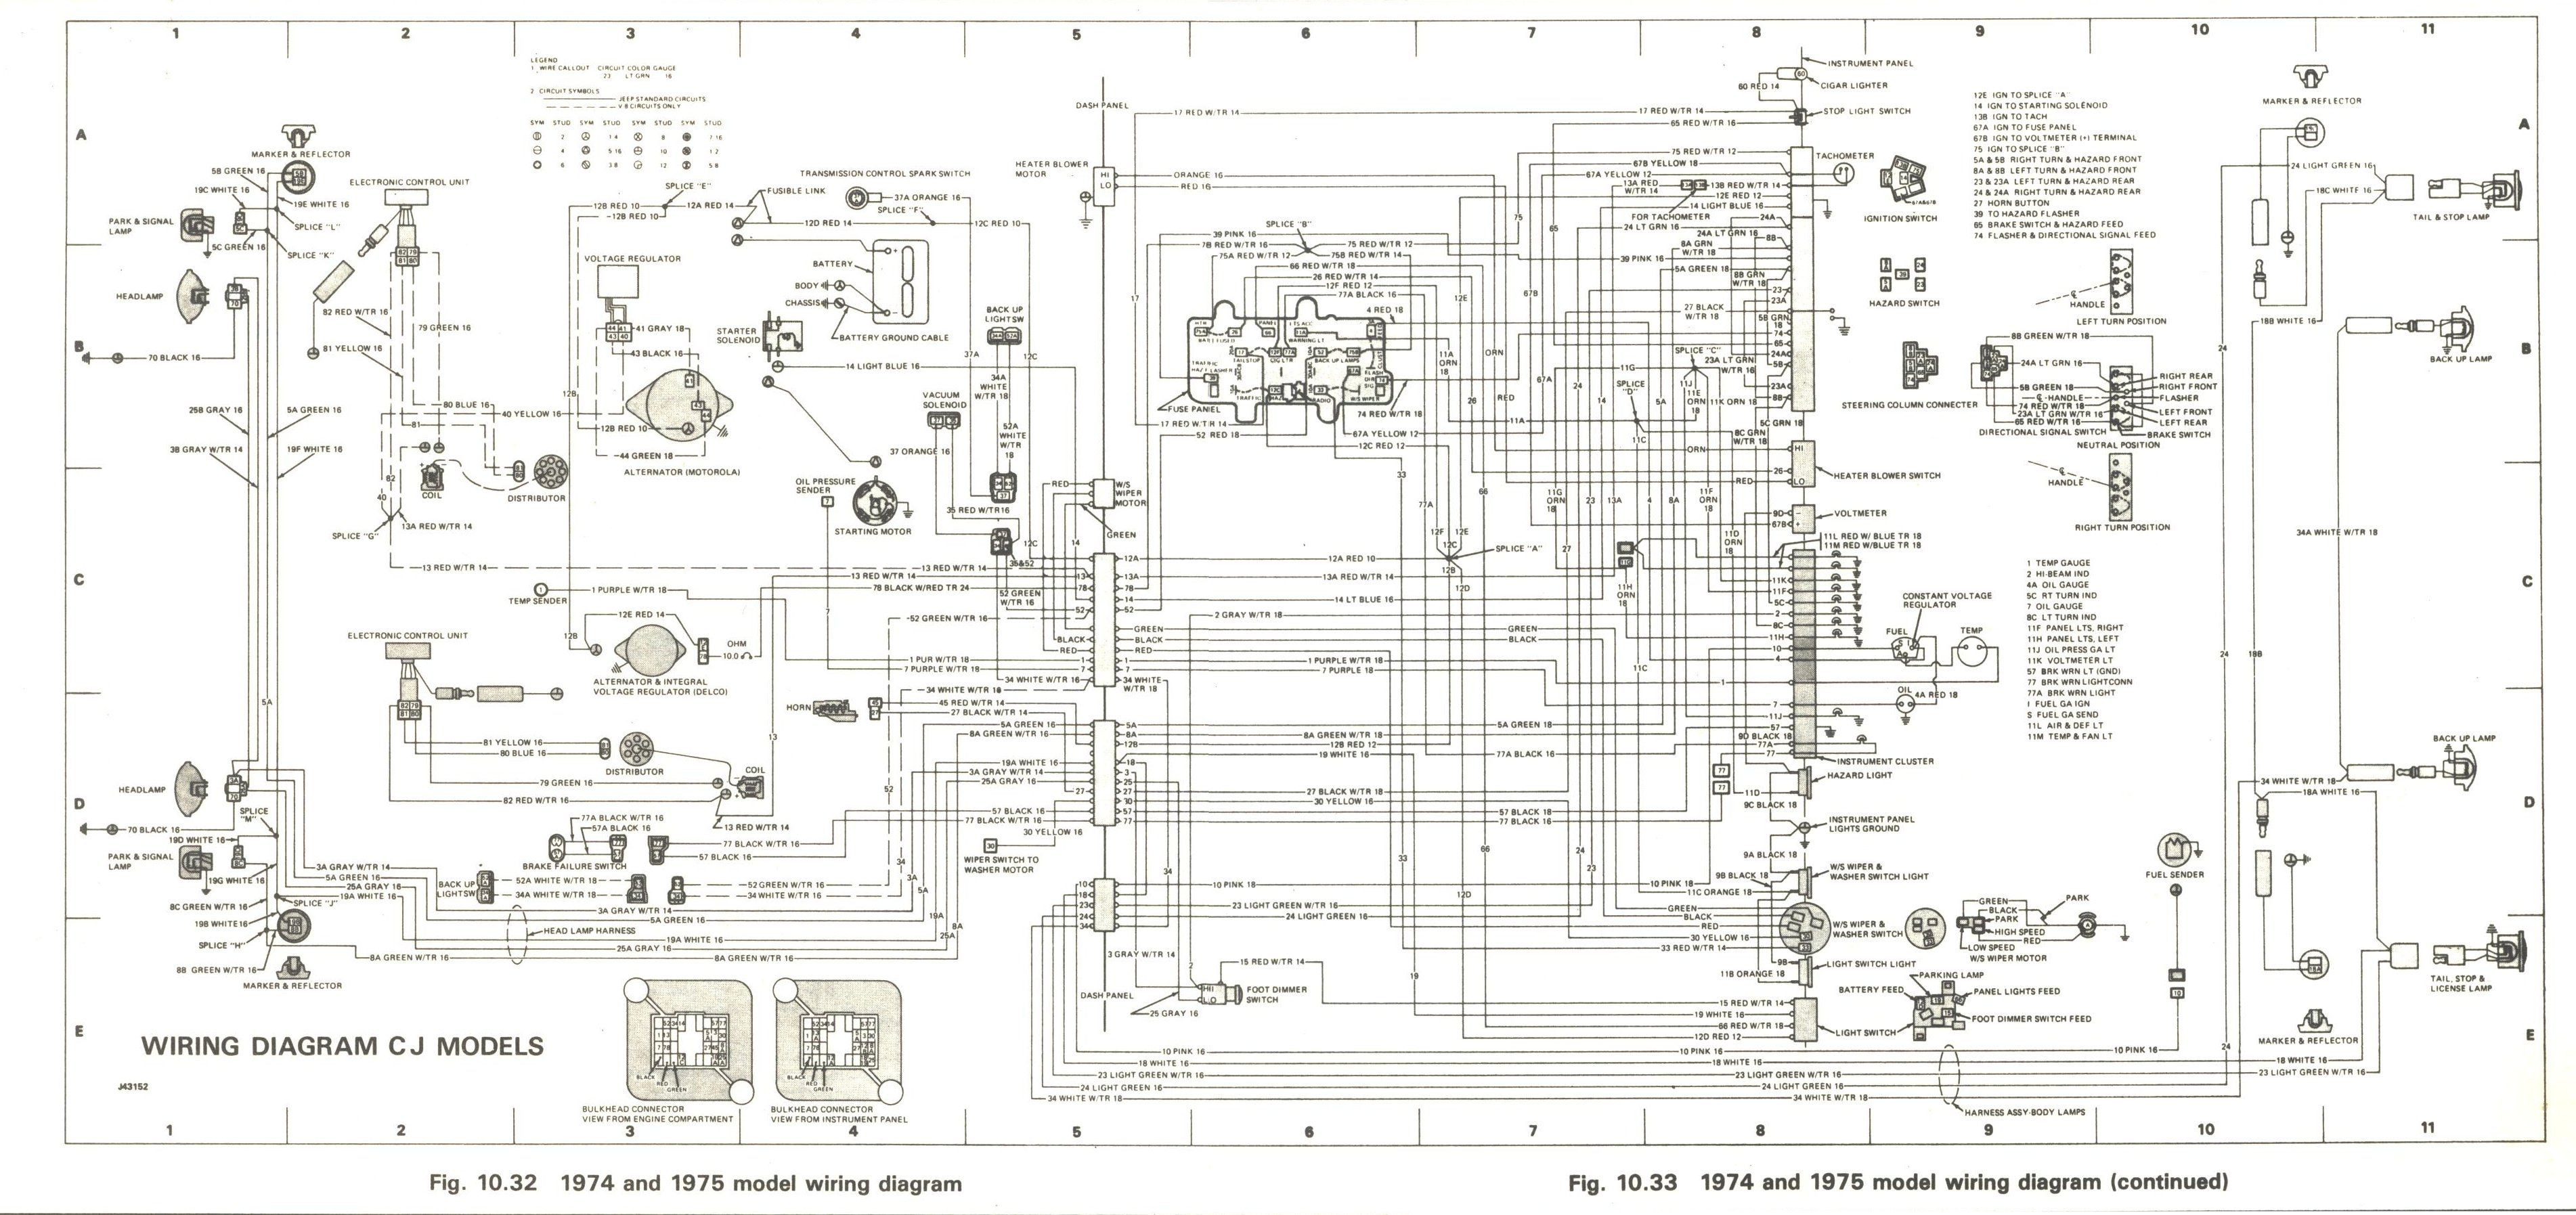 1980 cj7 wiring diagram picture schematic